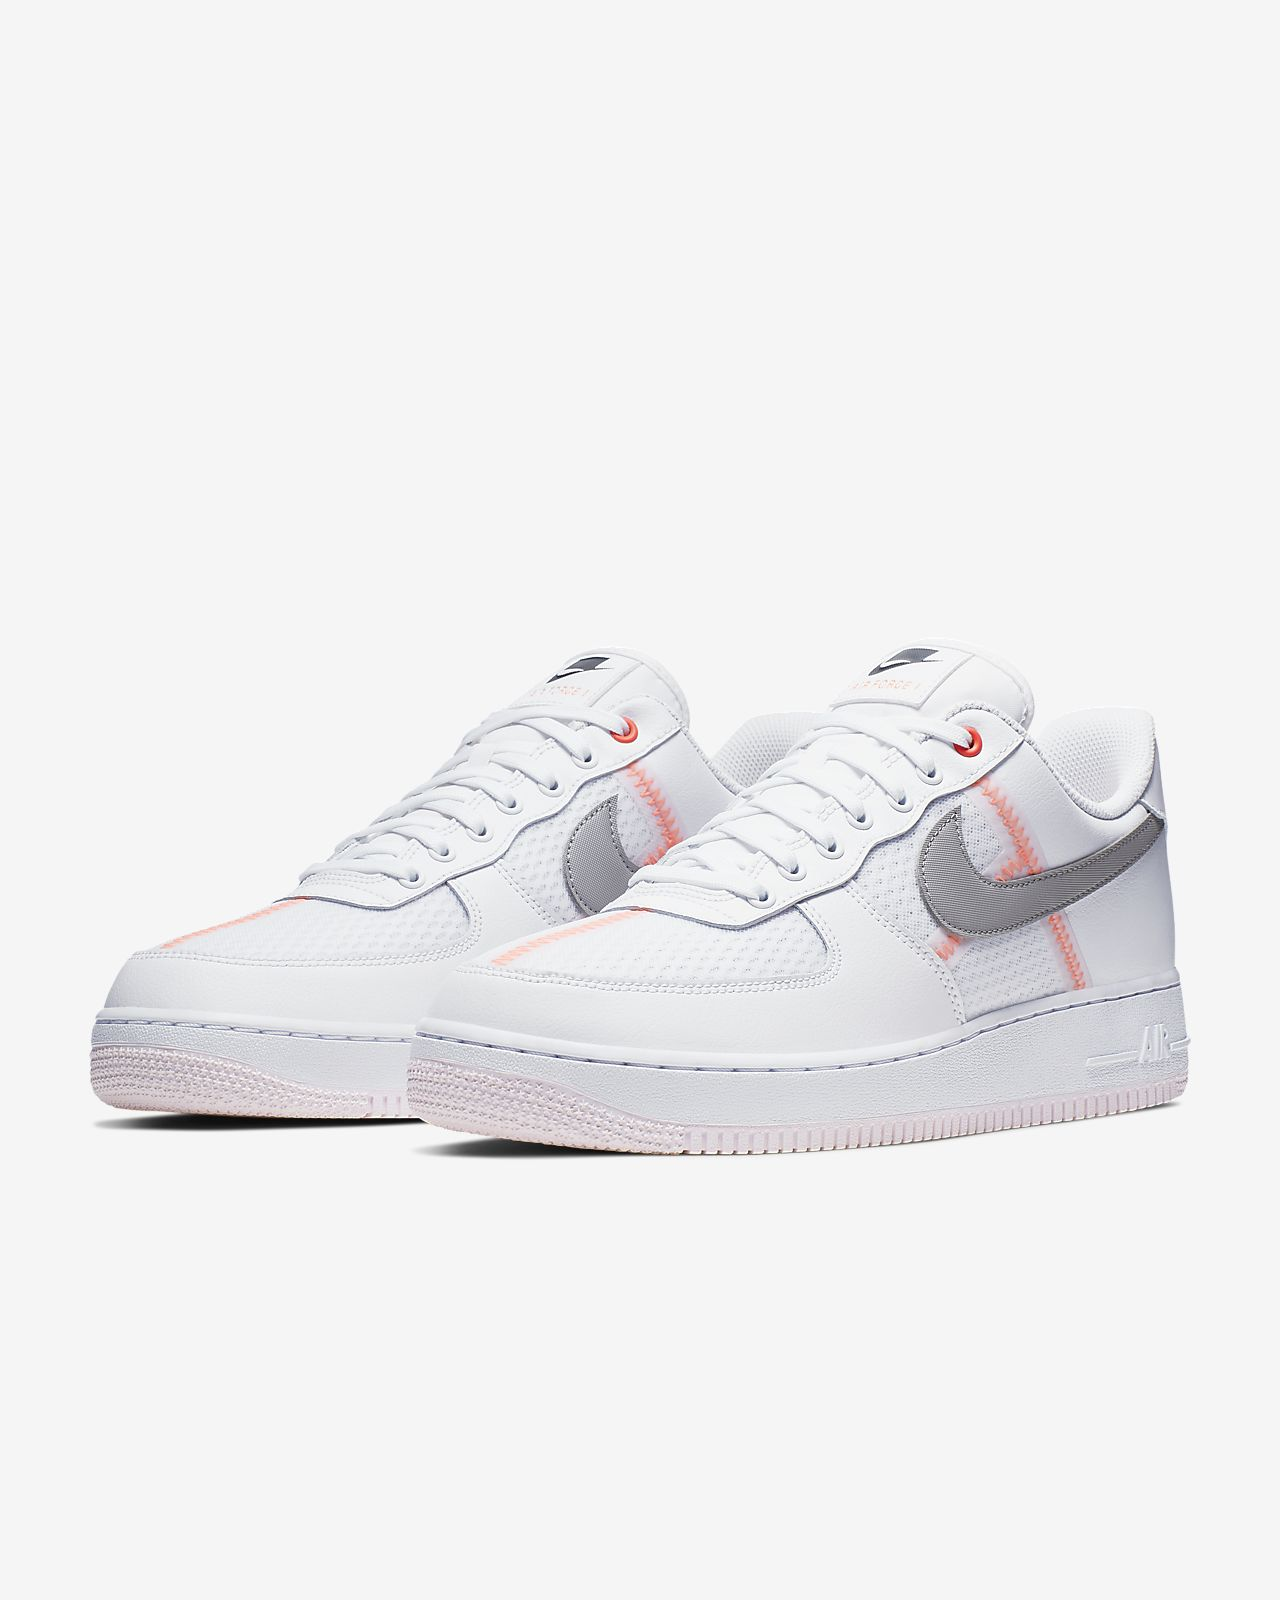 Nike Air Force 1 07 LV8 shoes white